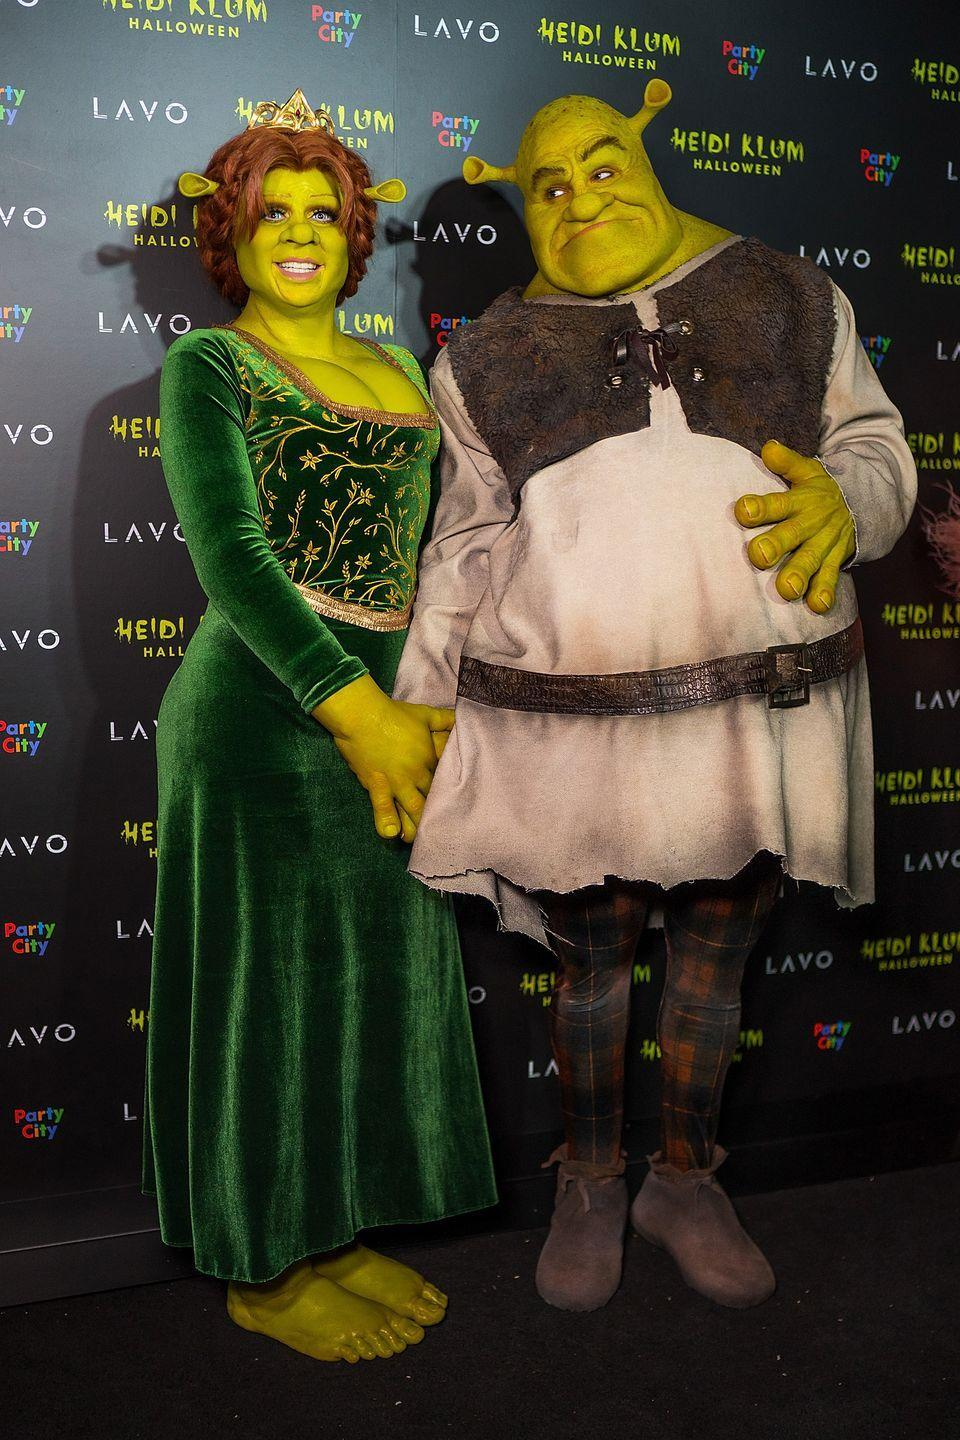 "<p>Heidi Klum is known for her <a href=""https://www.marieclaire.com/celebrity/g4151/heidi-klum-halloween-costumes/"" rel=""nofollow noopener"" target=""_blank"" data-ylk=""slk:remarkable costumes"" class=""link rapid-noclick-resp"">remarkable costumes</a>, but even this one took things to the next level. The model and her husband Tom Kaulitz were unrecognizable in 2018 as the <em>Shrek </em>characters.</p>"